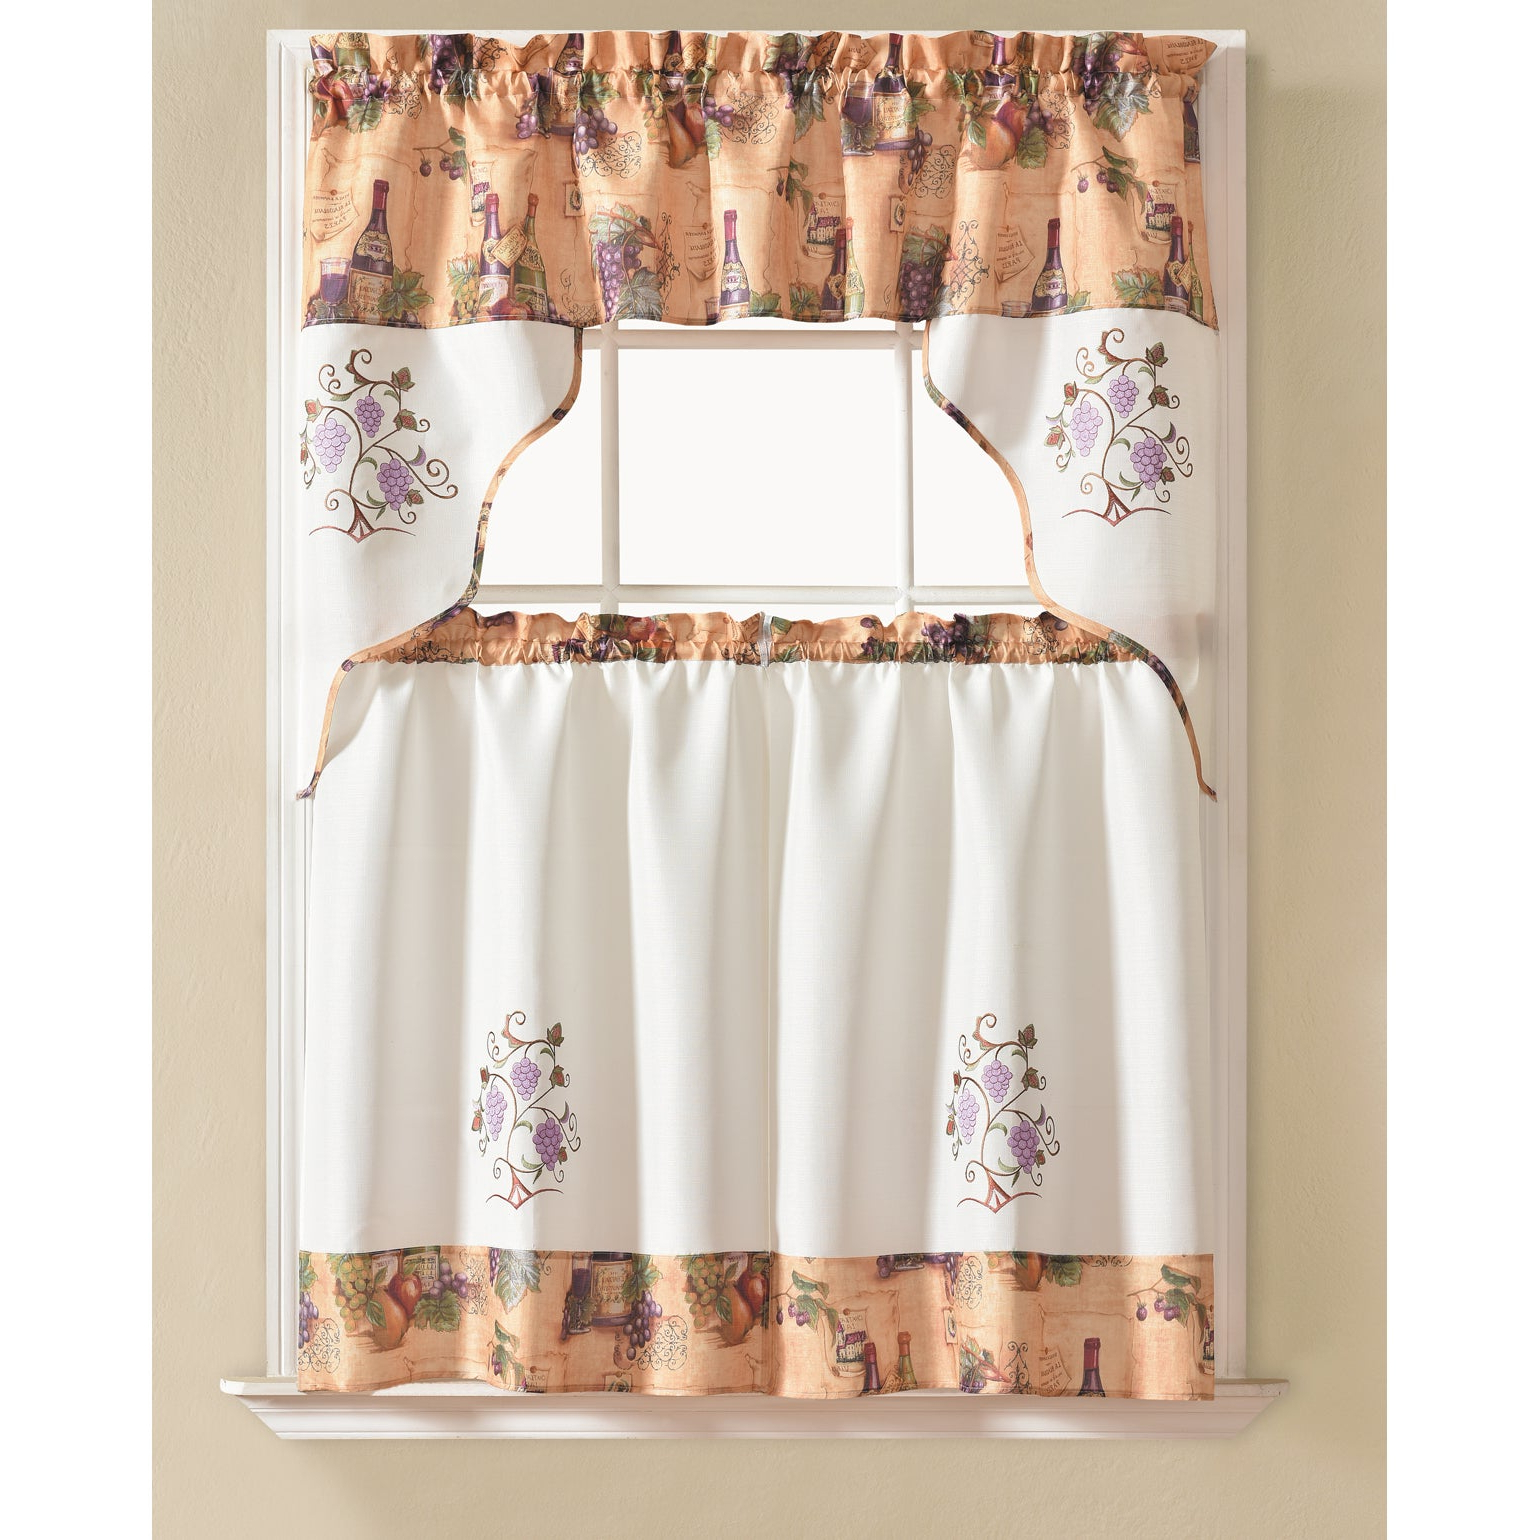 2020 Delicious Apples Kitchen Curtain Tier And Valance Sets Regarding Rt Designers Collection Urban Embroidered Tier And Valance Kitchen Curtain Tier Set (View 5 of 20)